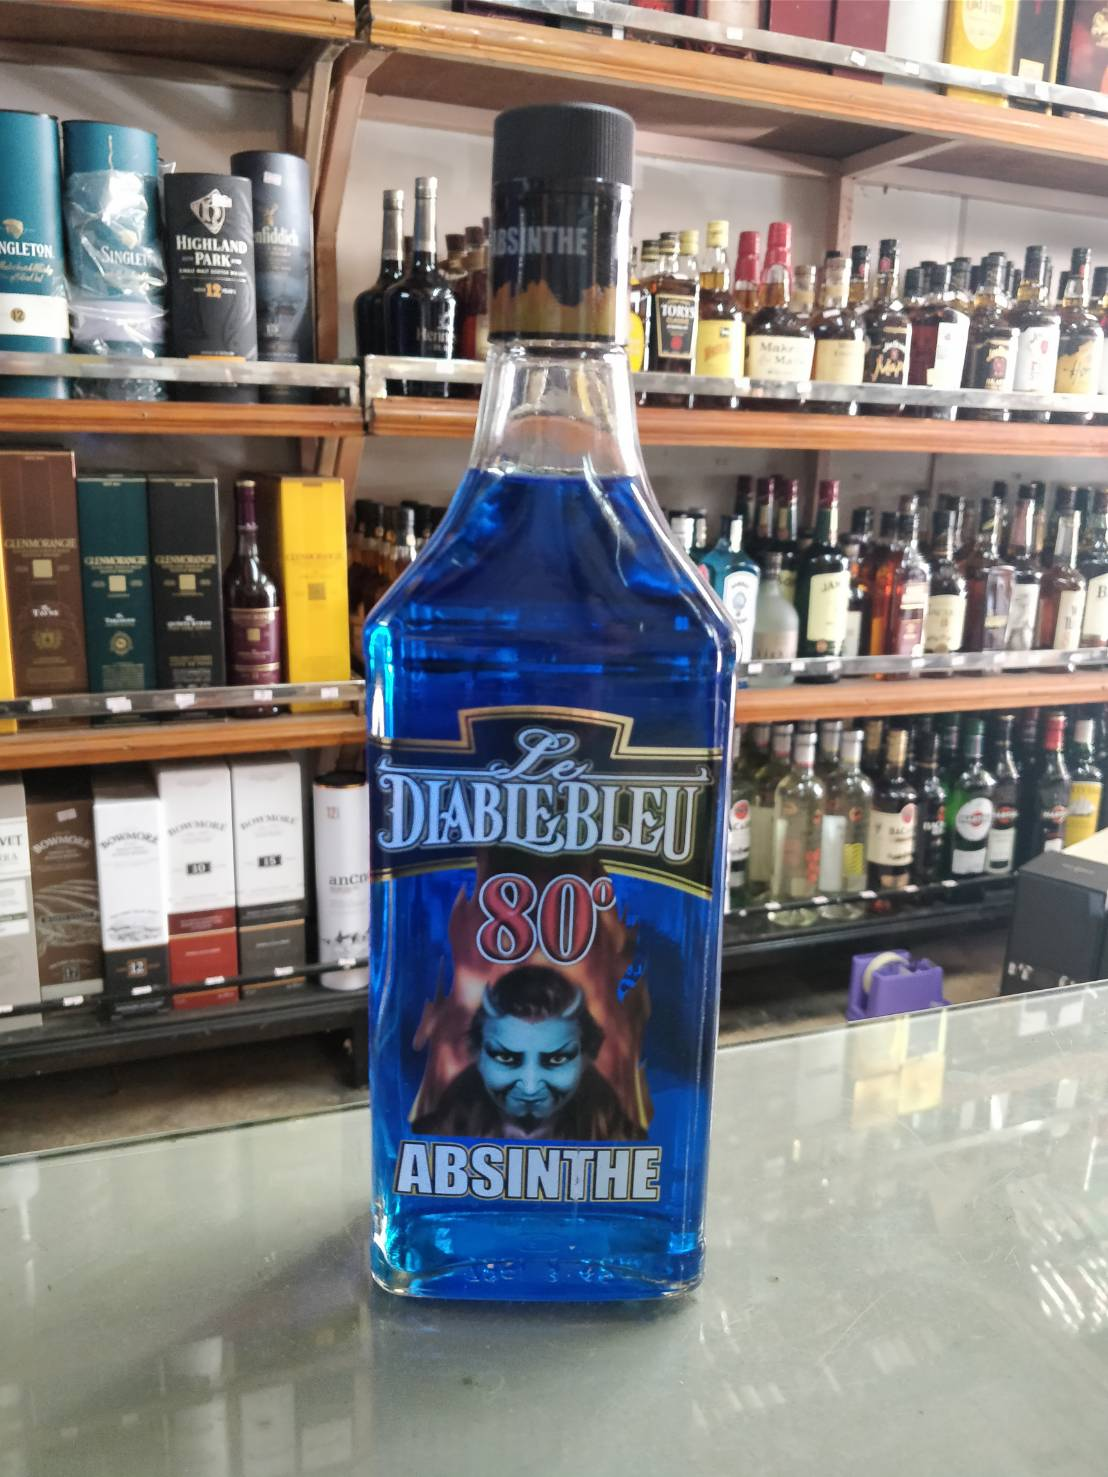 Absenthe Diable 80 Degree (80%)